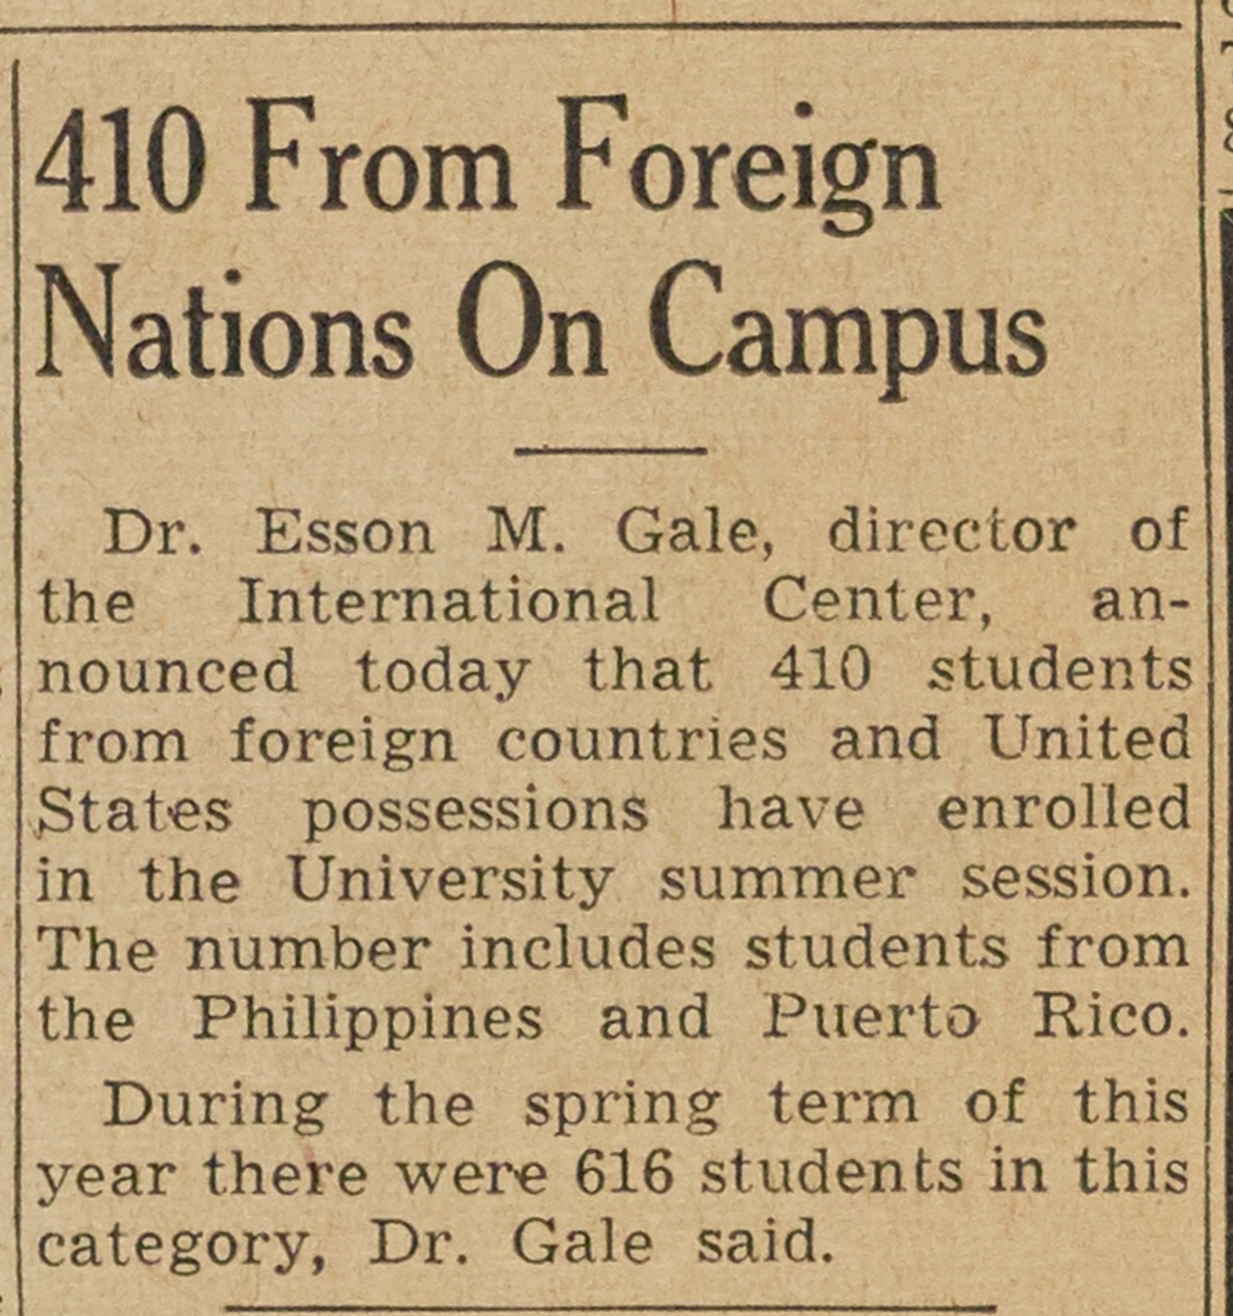 410 From Foreign Nations On Campus image